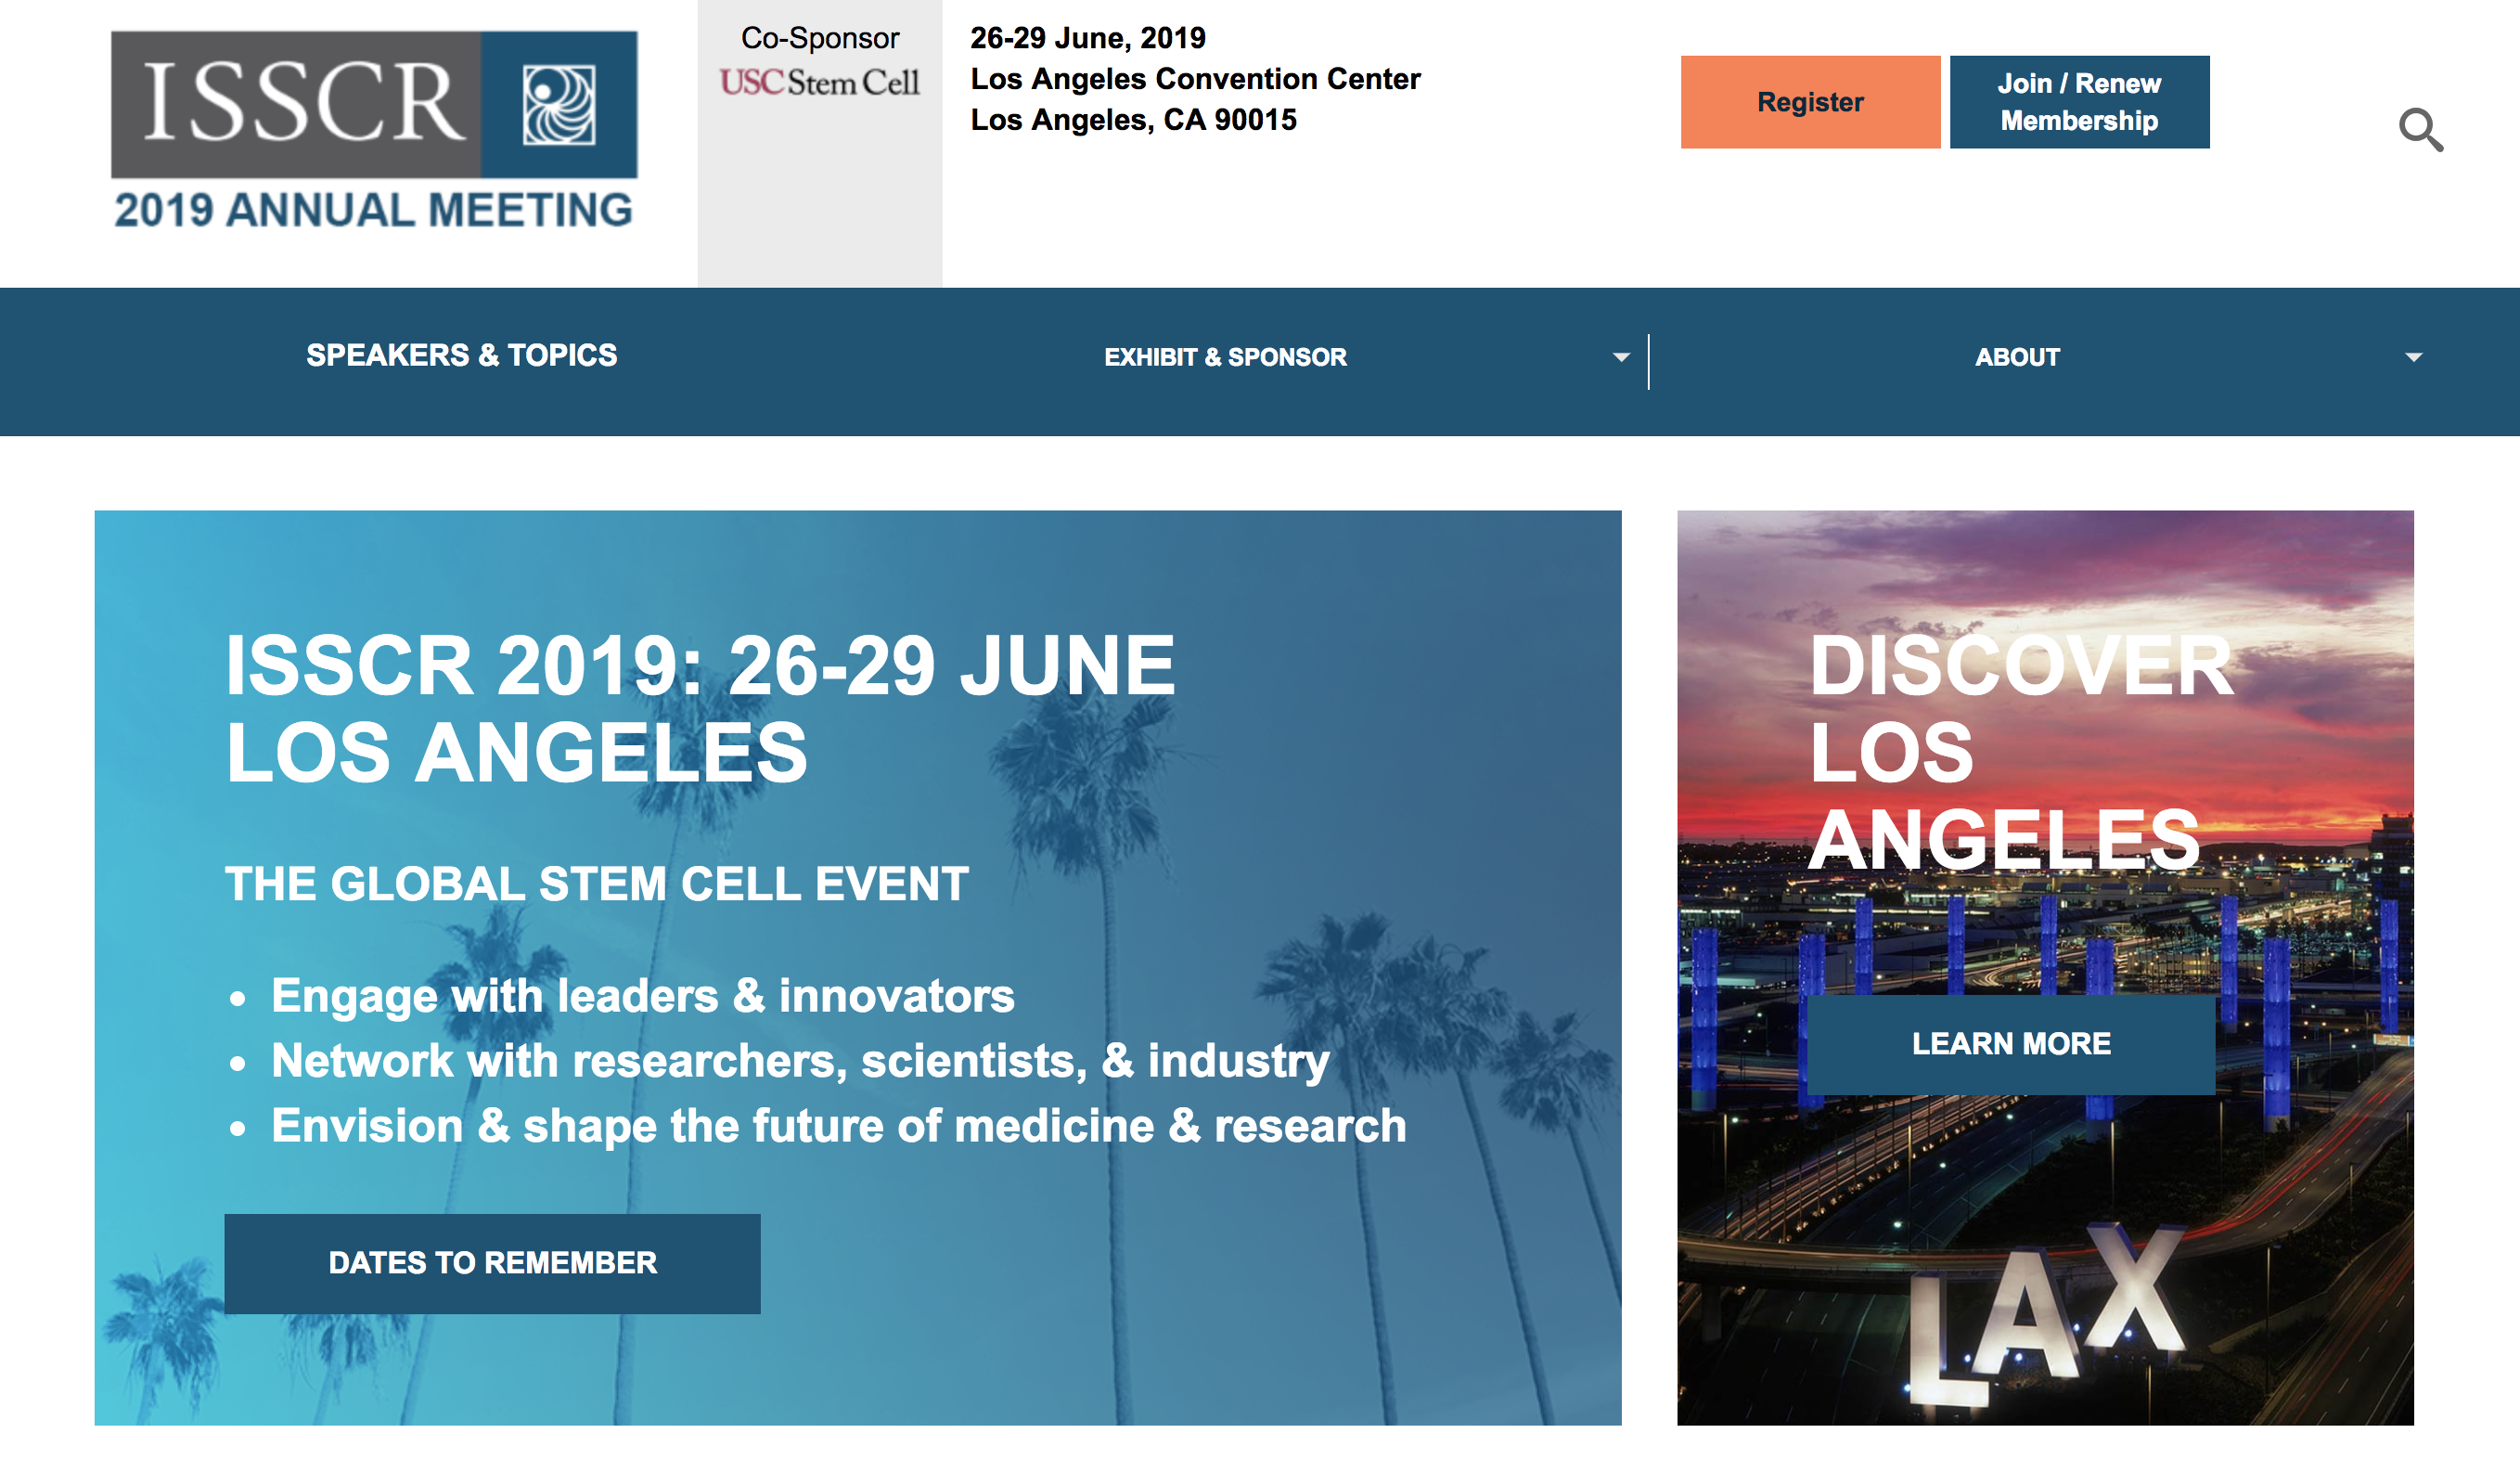 International Society for Stem Cell Research (ISSCR) Annual Meeting